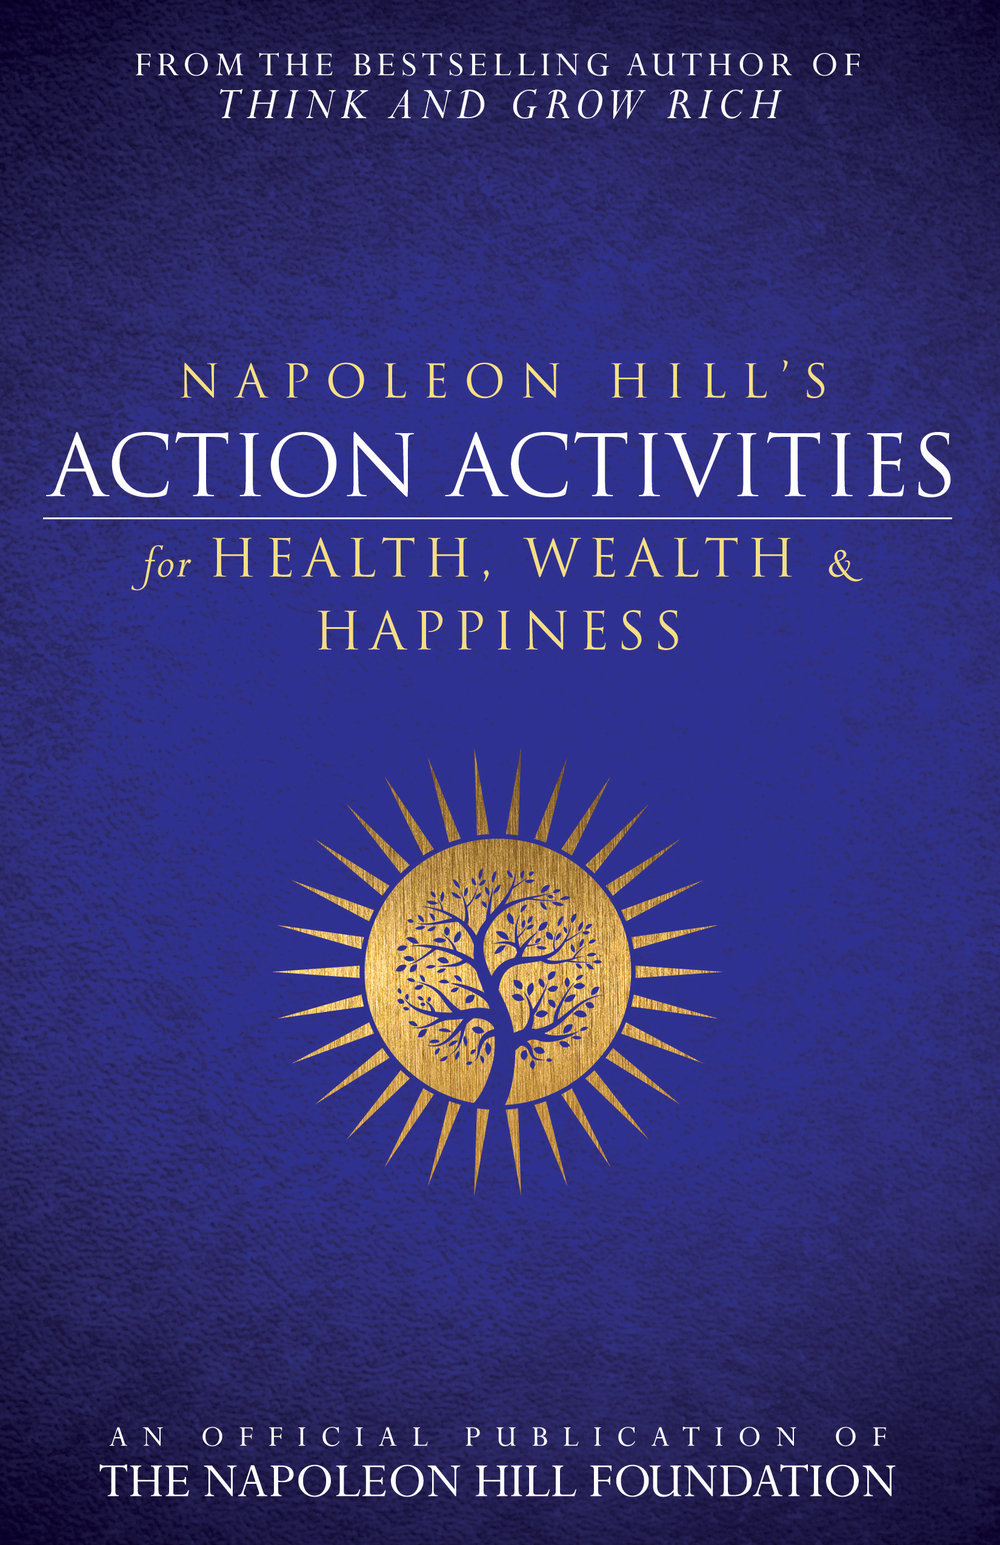 Napoleon Hill's Action Activities for Health, Wealth, and Happiness - By napoleon hill